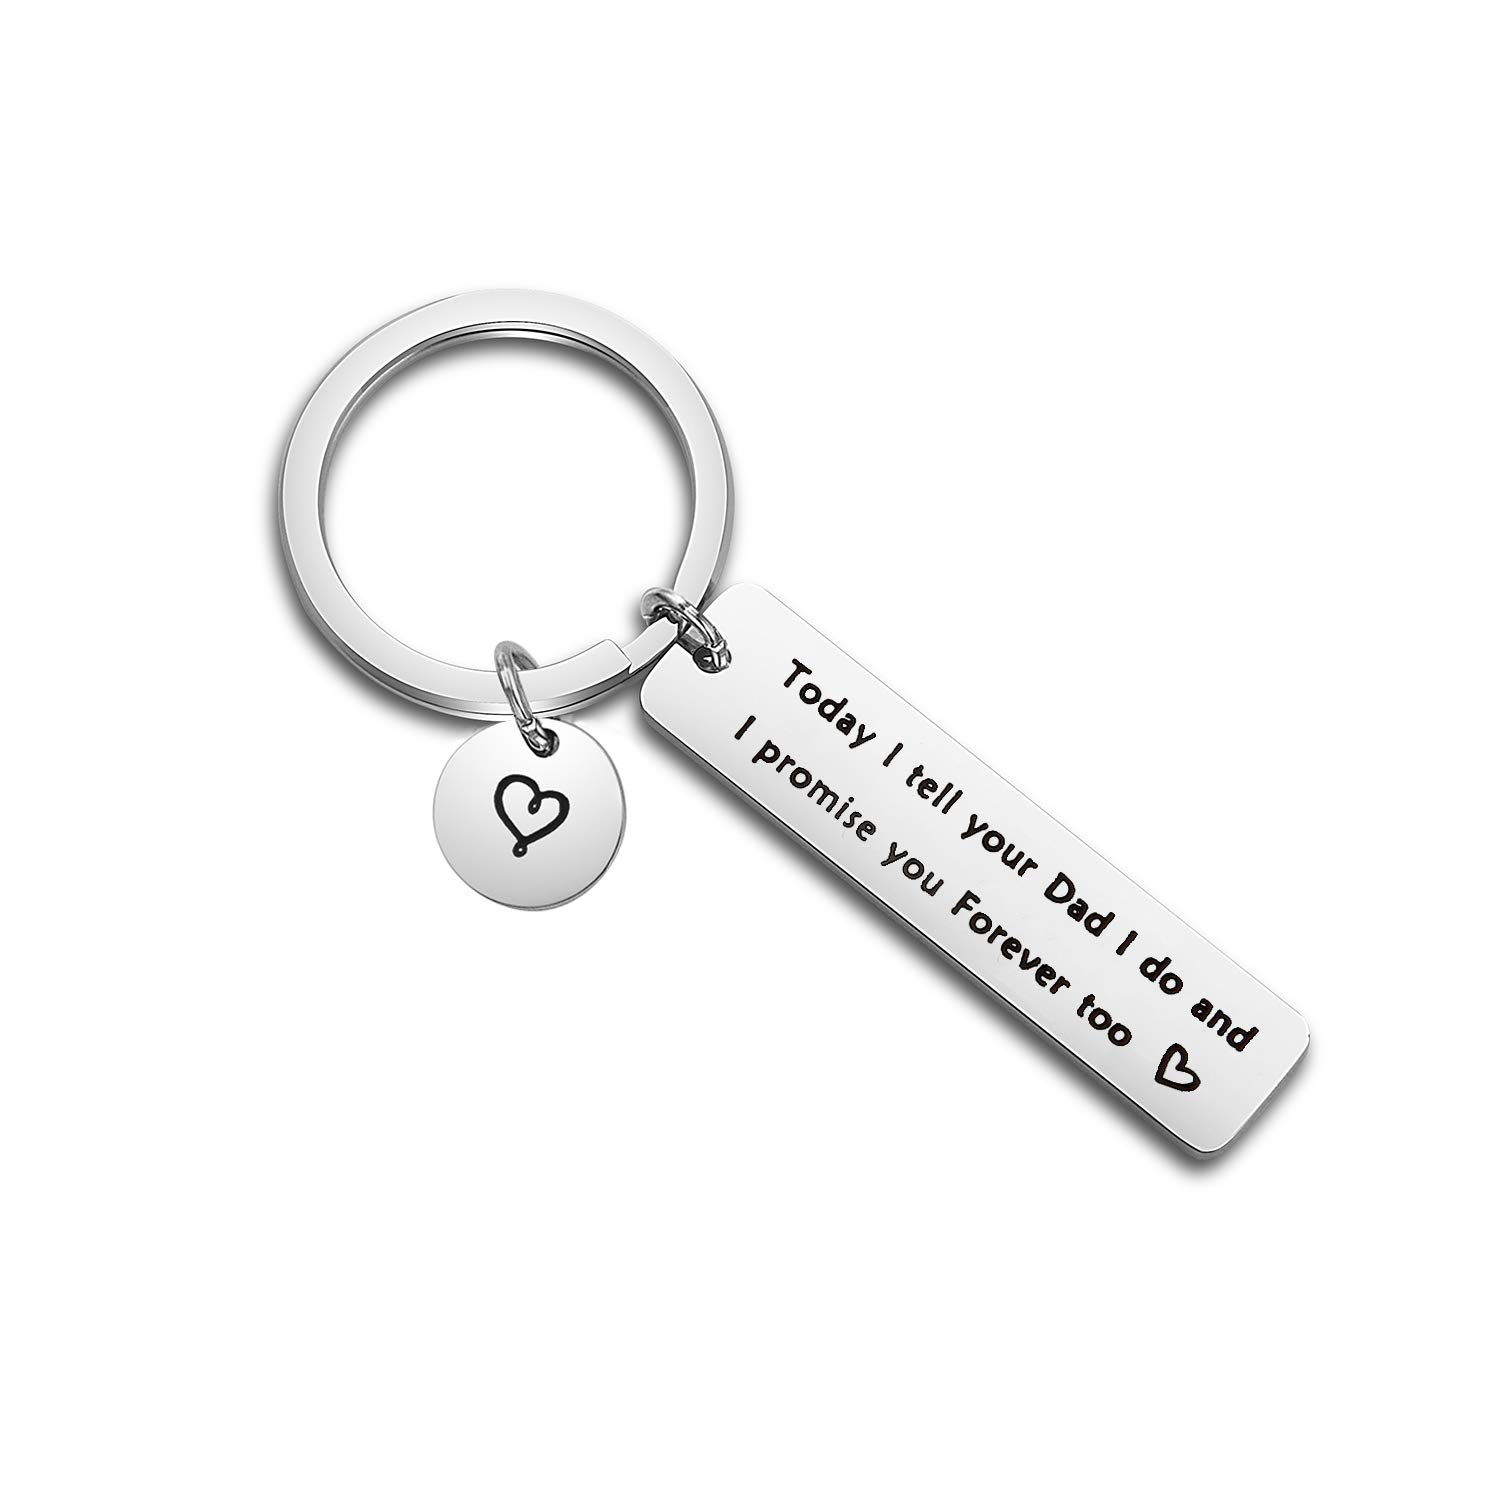 TGBJE Today I Tell Your Dad/Mom I Do I Promise You Forever Too Keychain Stepdaughter Wedding Gift from Stepmom (Dad Keychain)